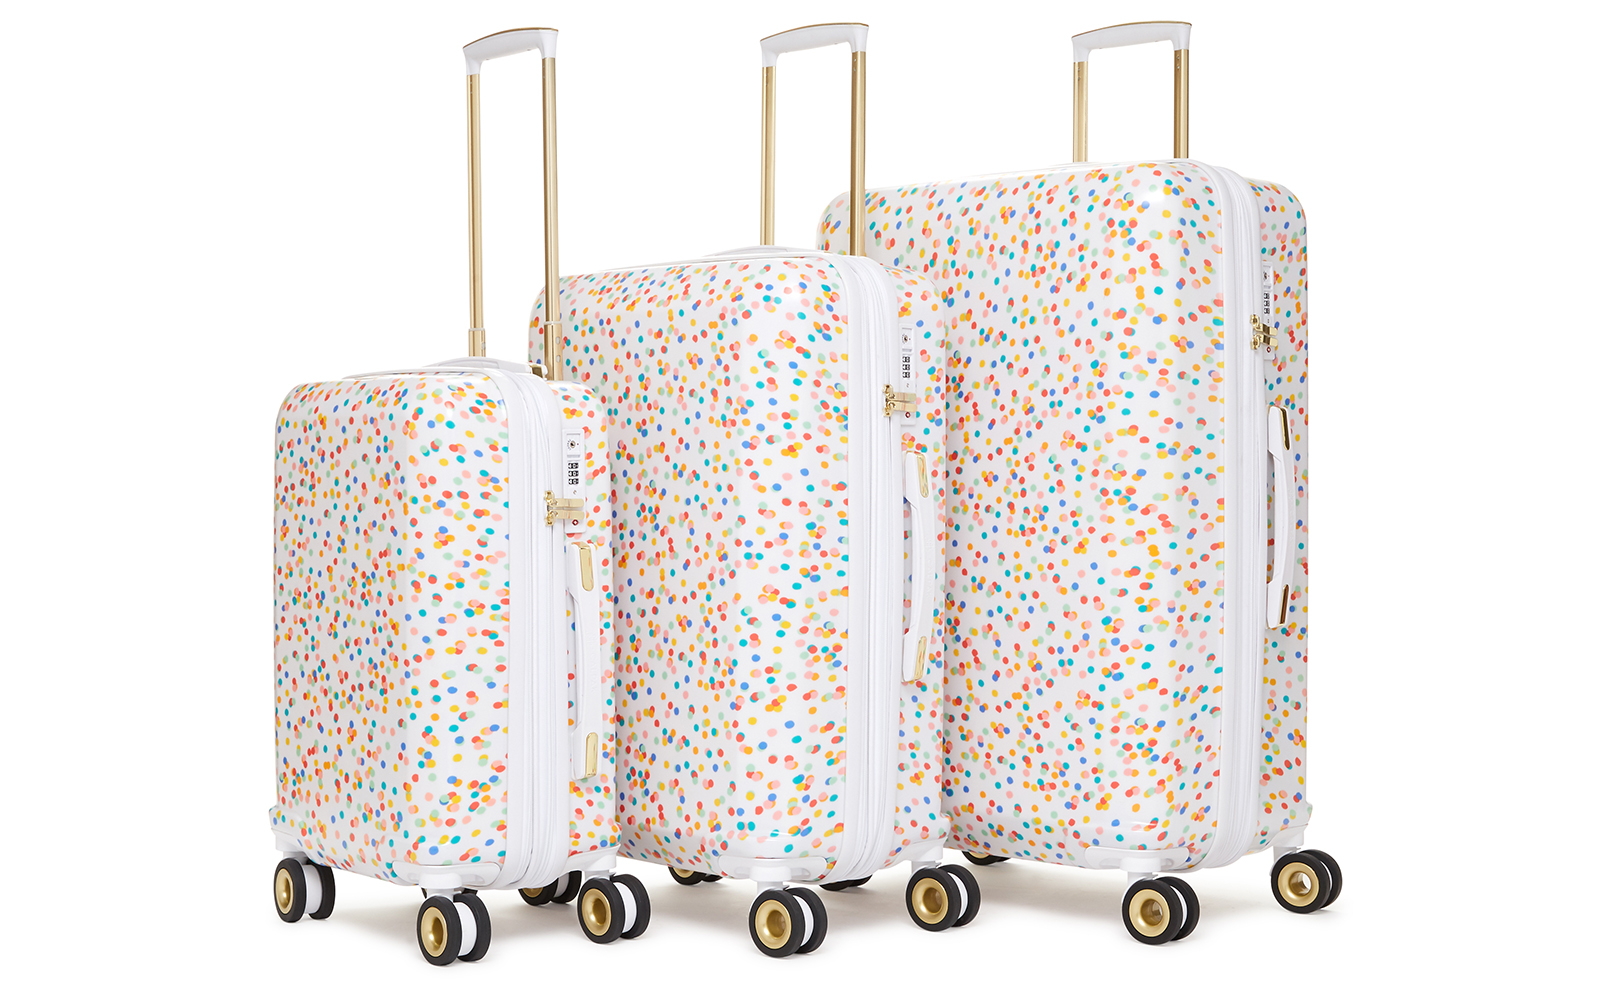 28-inch, 24-inch, and 20-inch Hardshell Spinner Set in Confetti